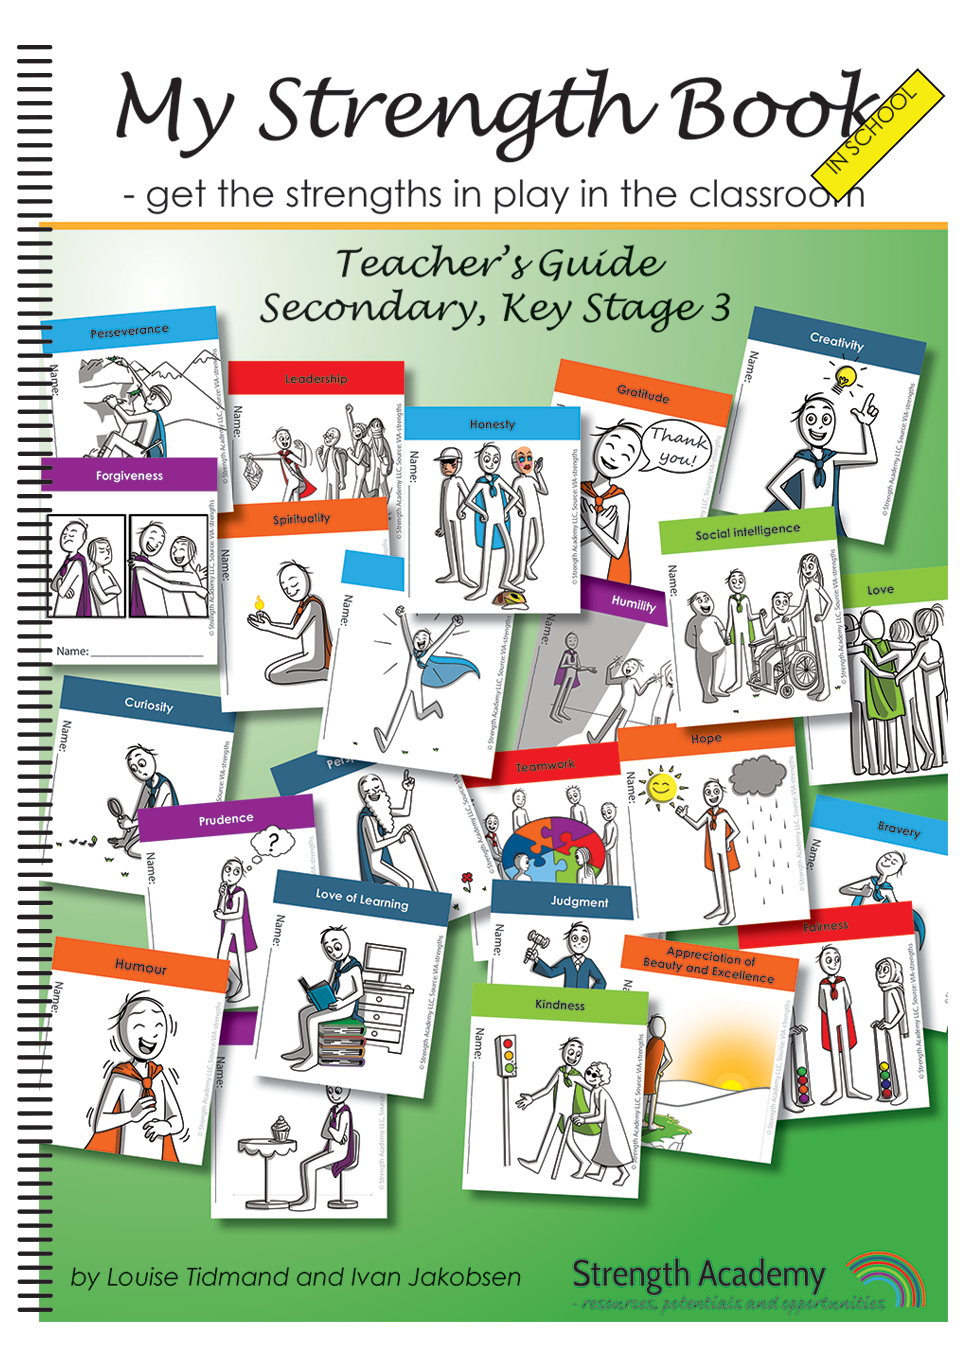 My Strength Book in School- get the strengths in play in the classroom, KS3, teacher's guide